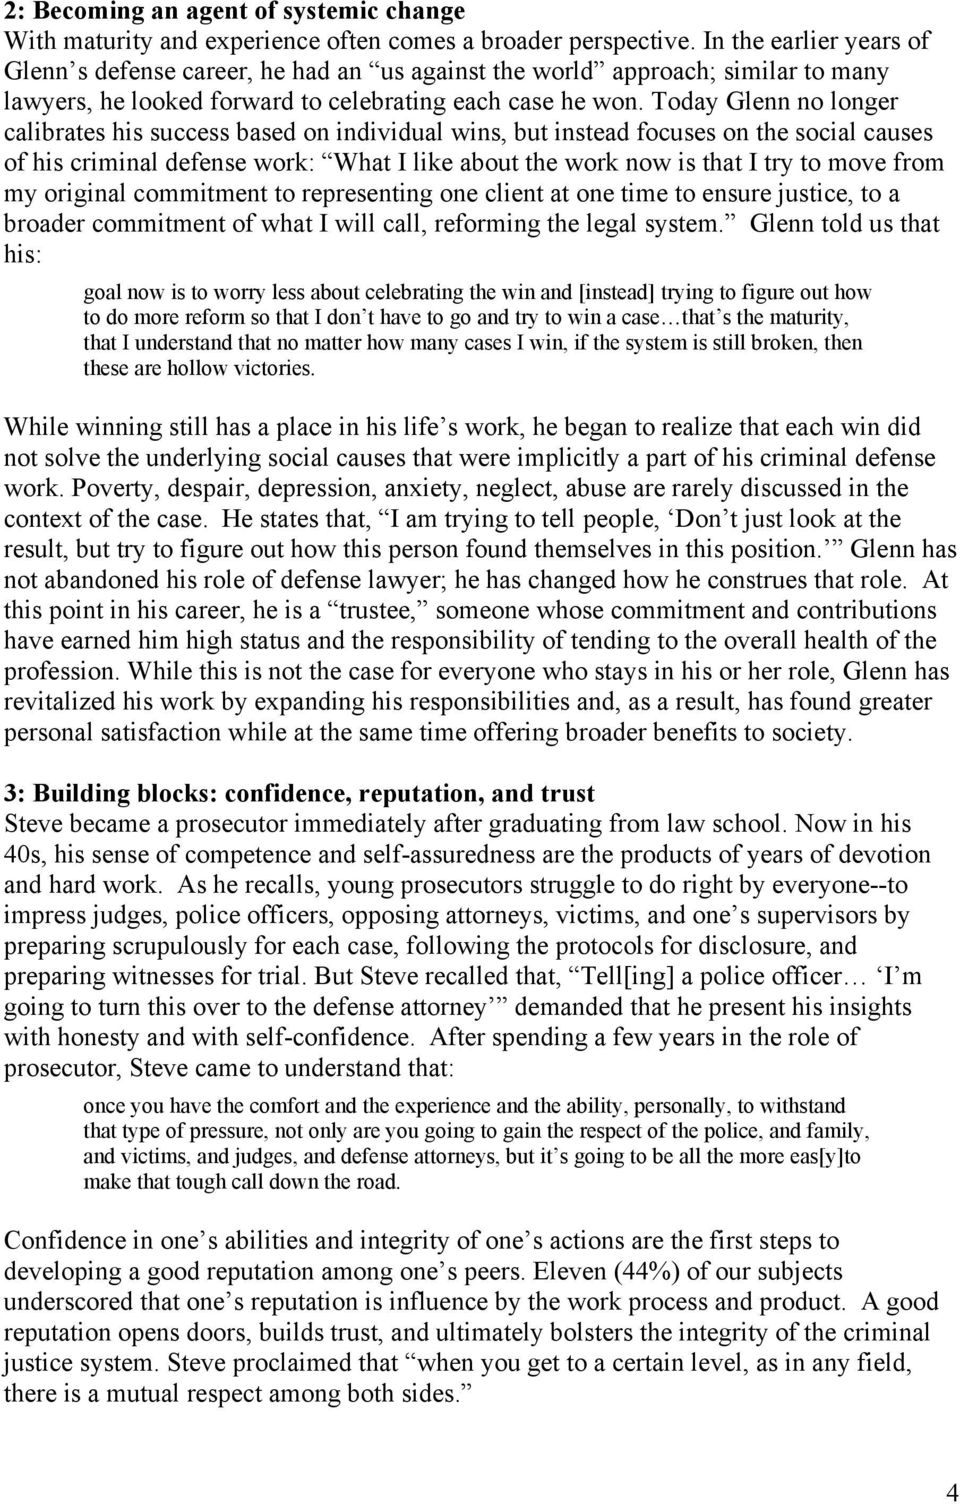 Today Glenn no longer calibrates his success based on individual wins, but instead focuses on the social causes of his criminal defense work: What I like about the work now is that I try to move from